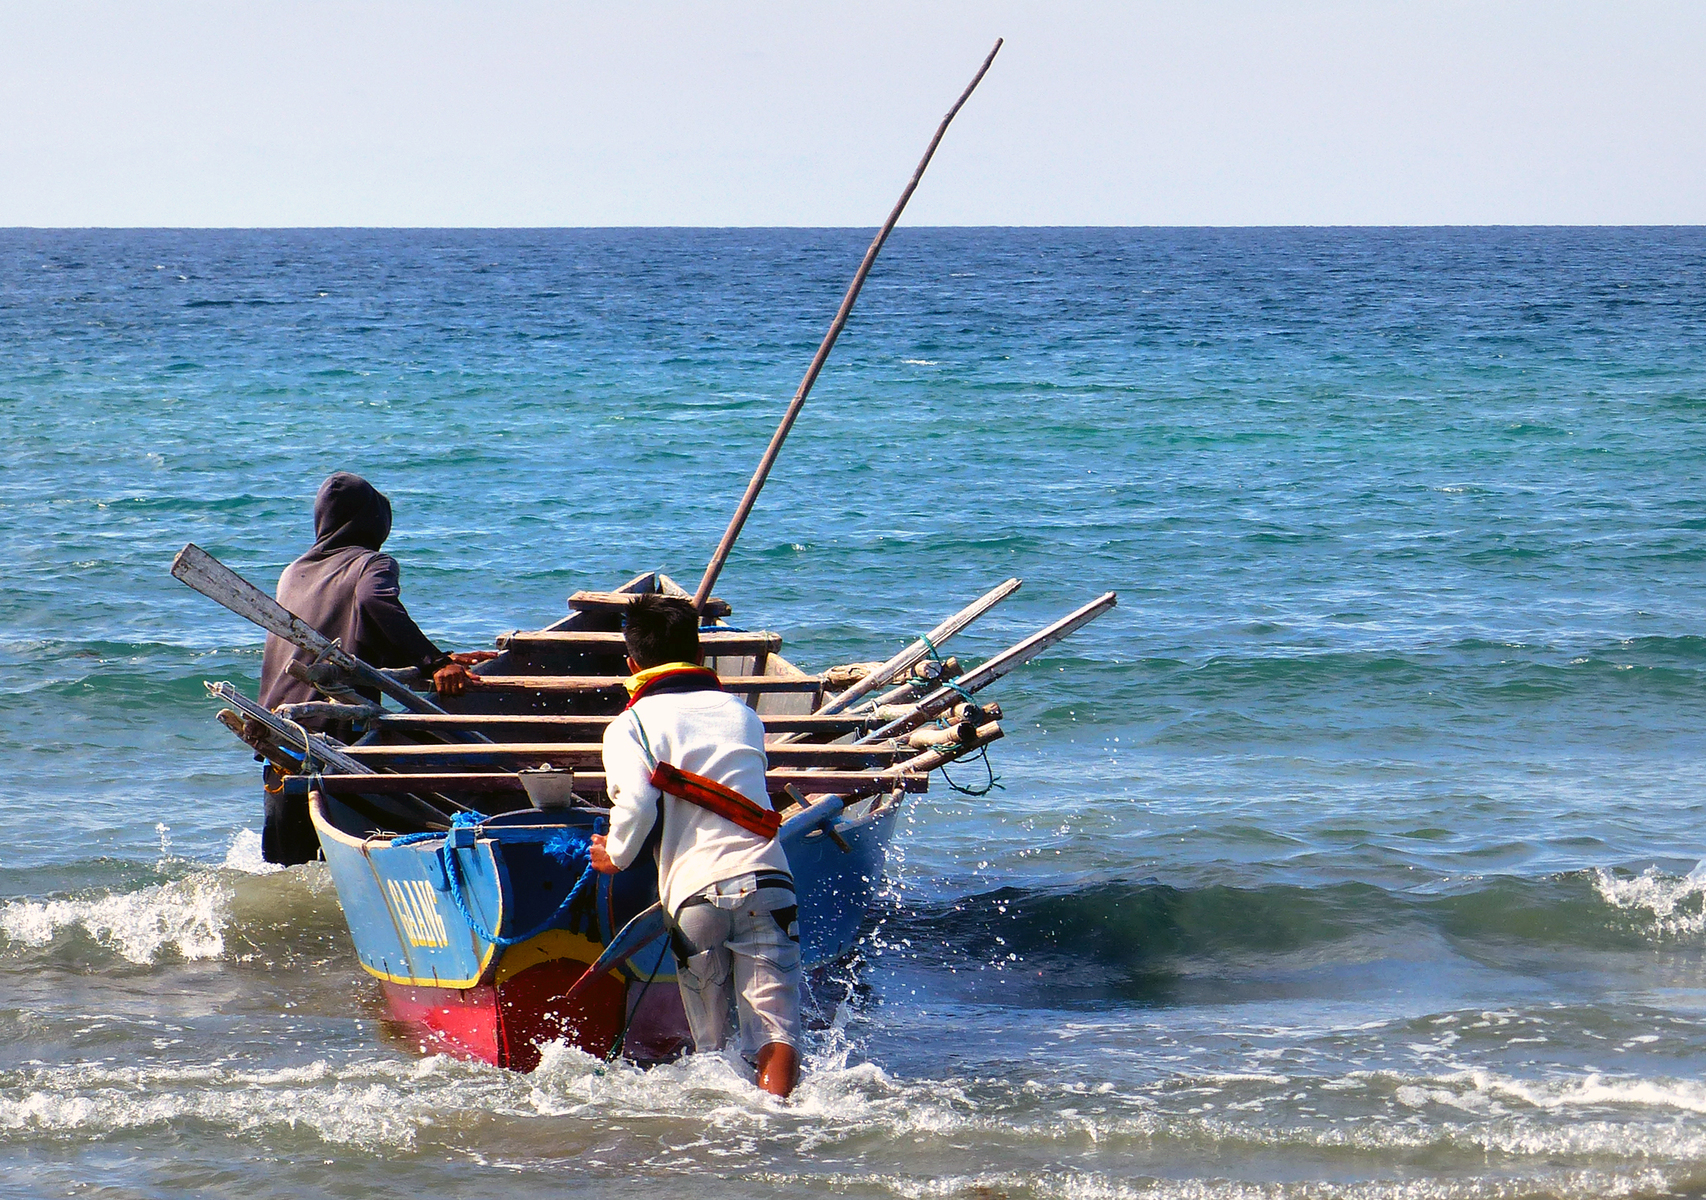 When in Goa With Friends, This is What You Should Do - Go for Fishing at Bogmalo Beach